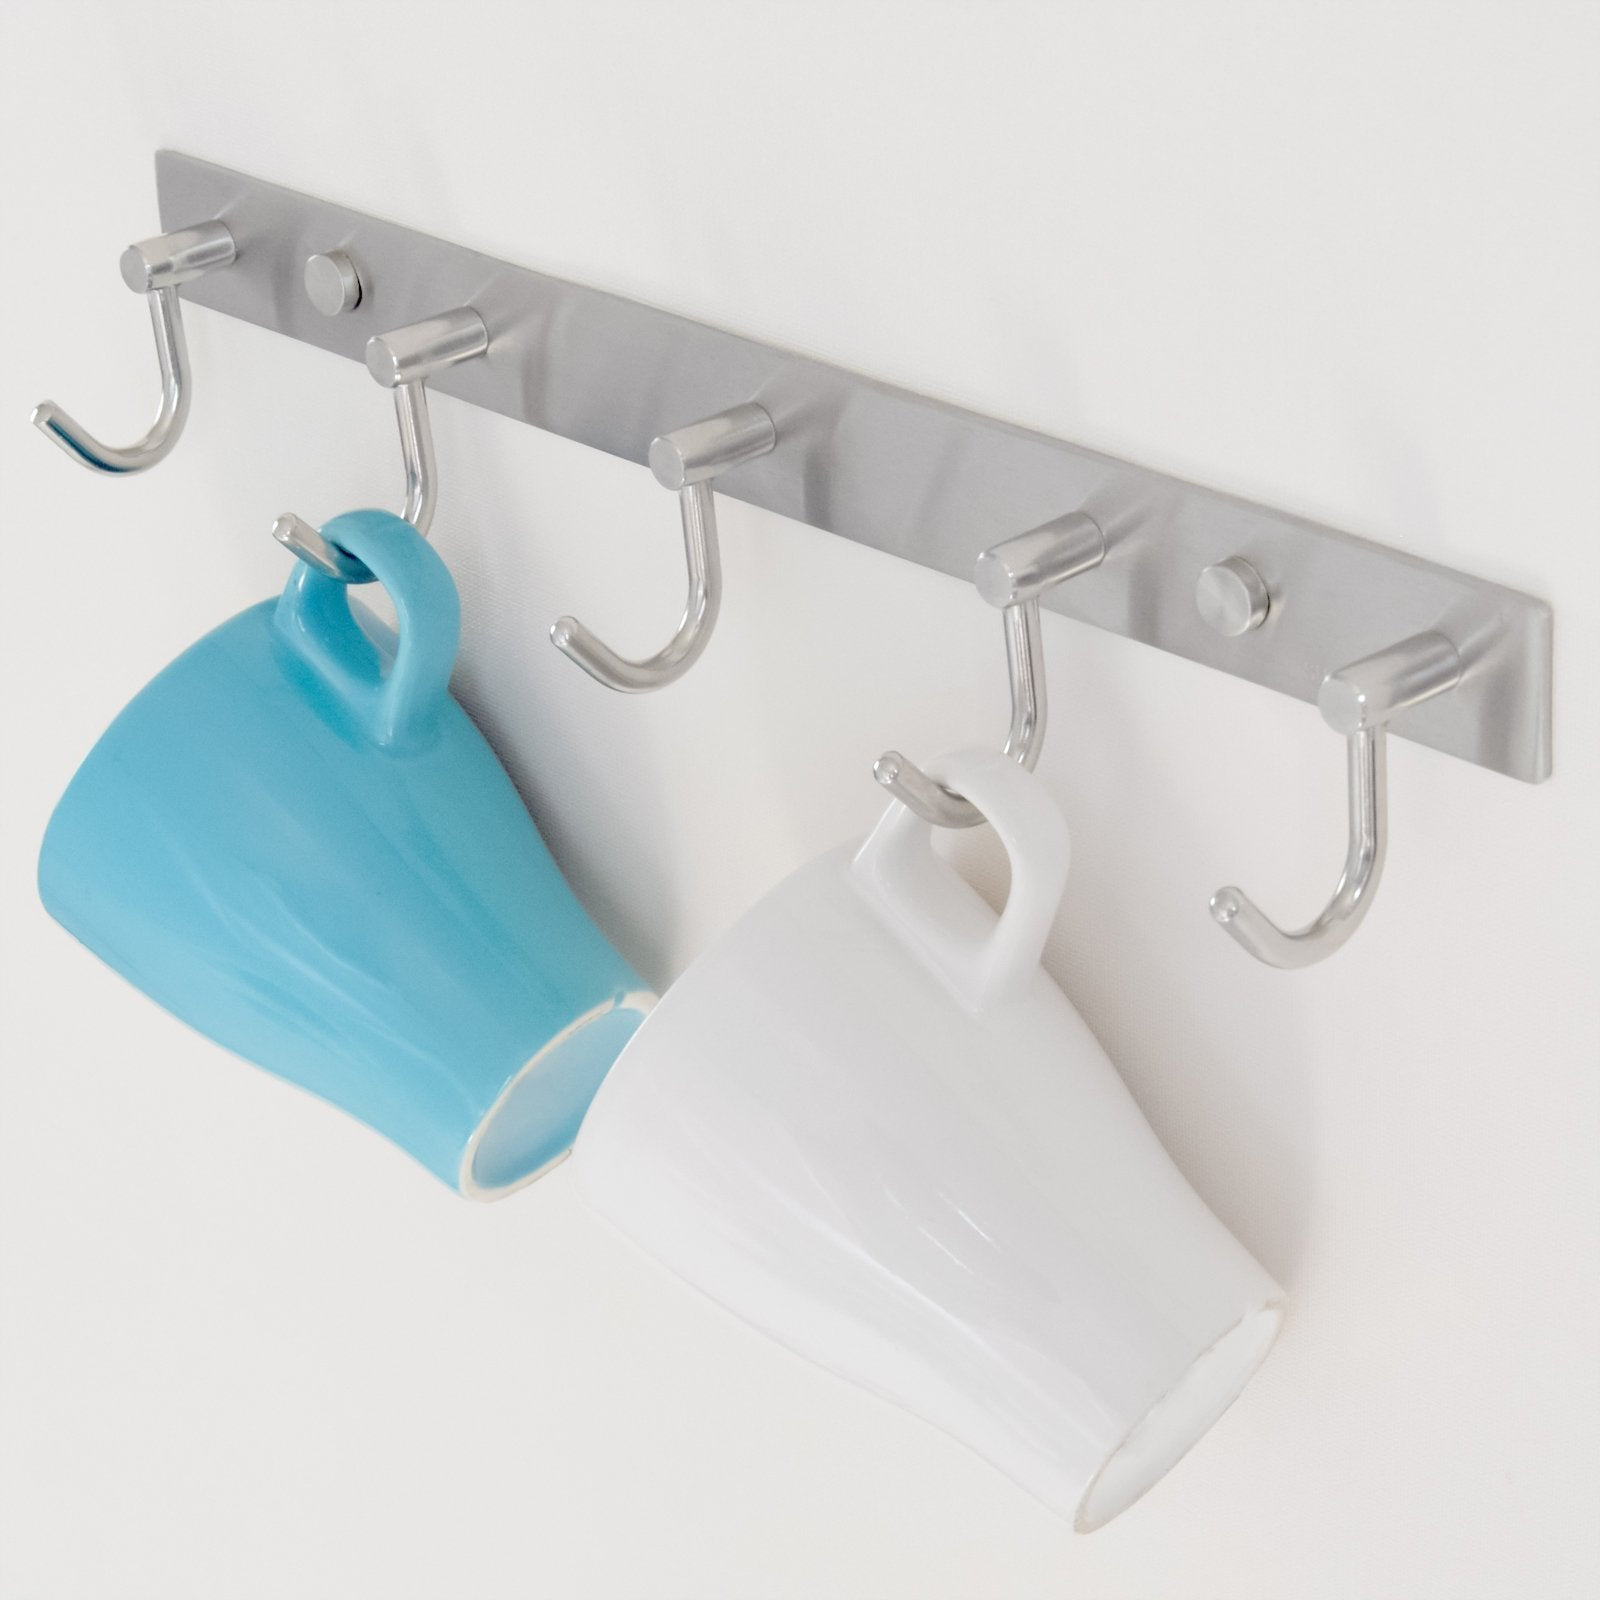 The best arks royal wall coat hooks solid stainless steel hanger rail durable hook rack for clothes bags or keys brushed stainless steel finish 8 hooks